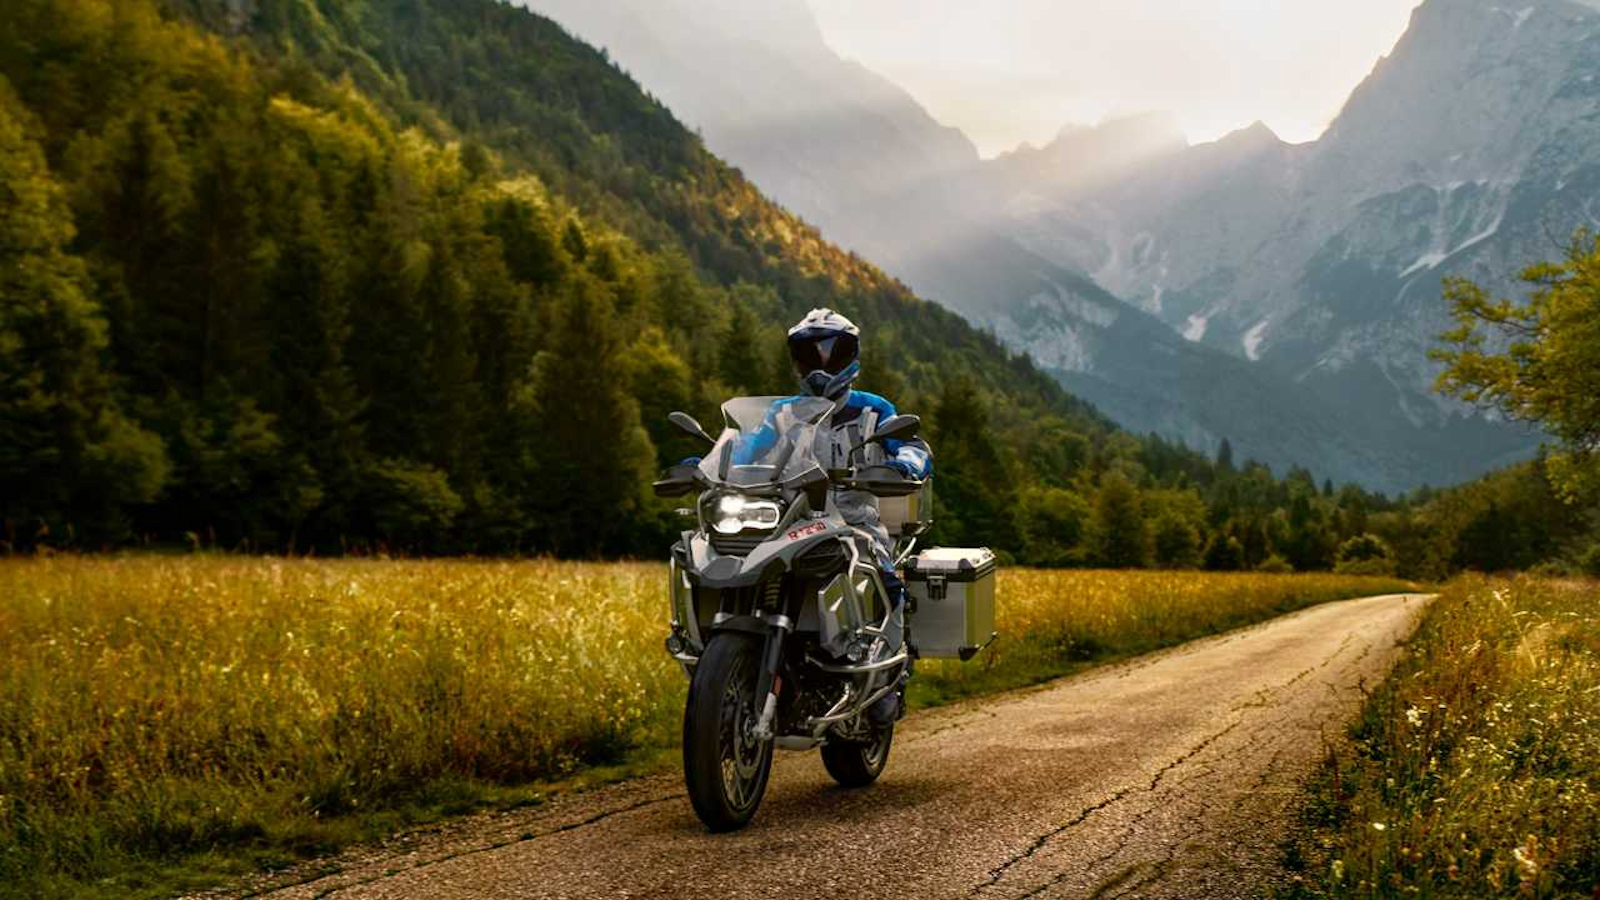 2019 BMW R 1250 GS Adventure Pictures, Photos, Wallpapers